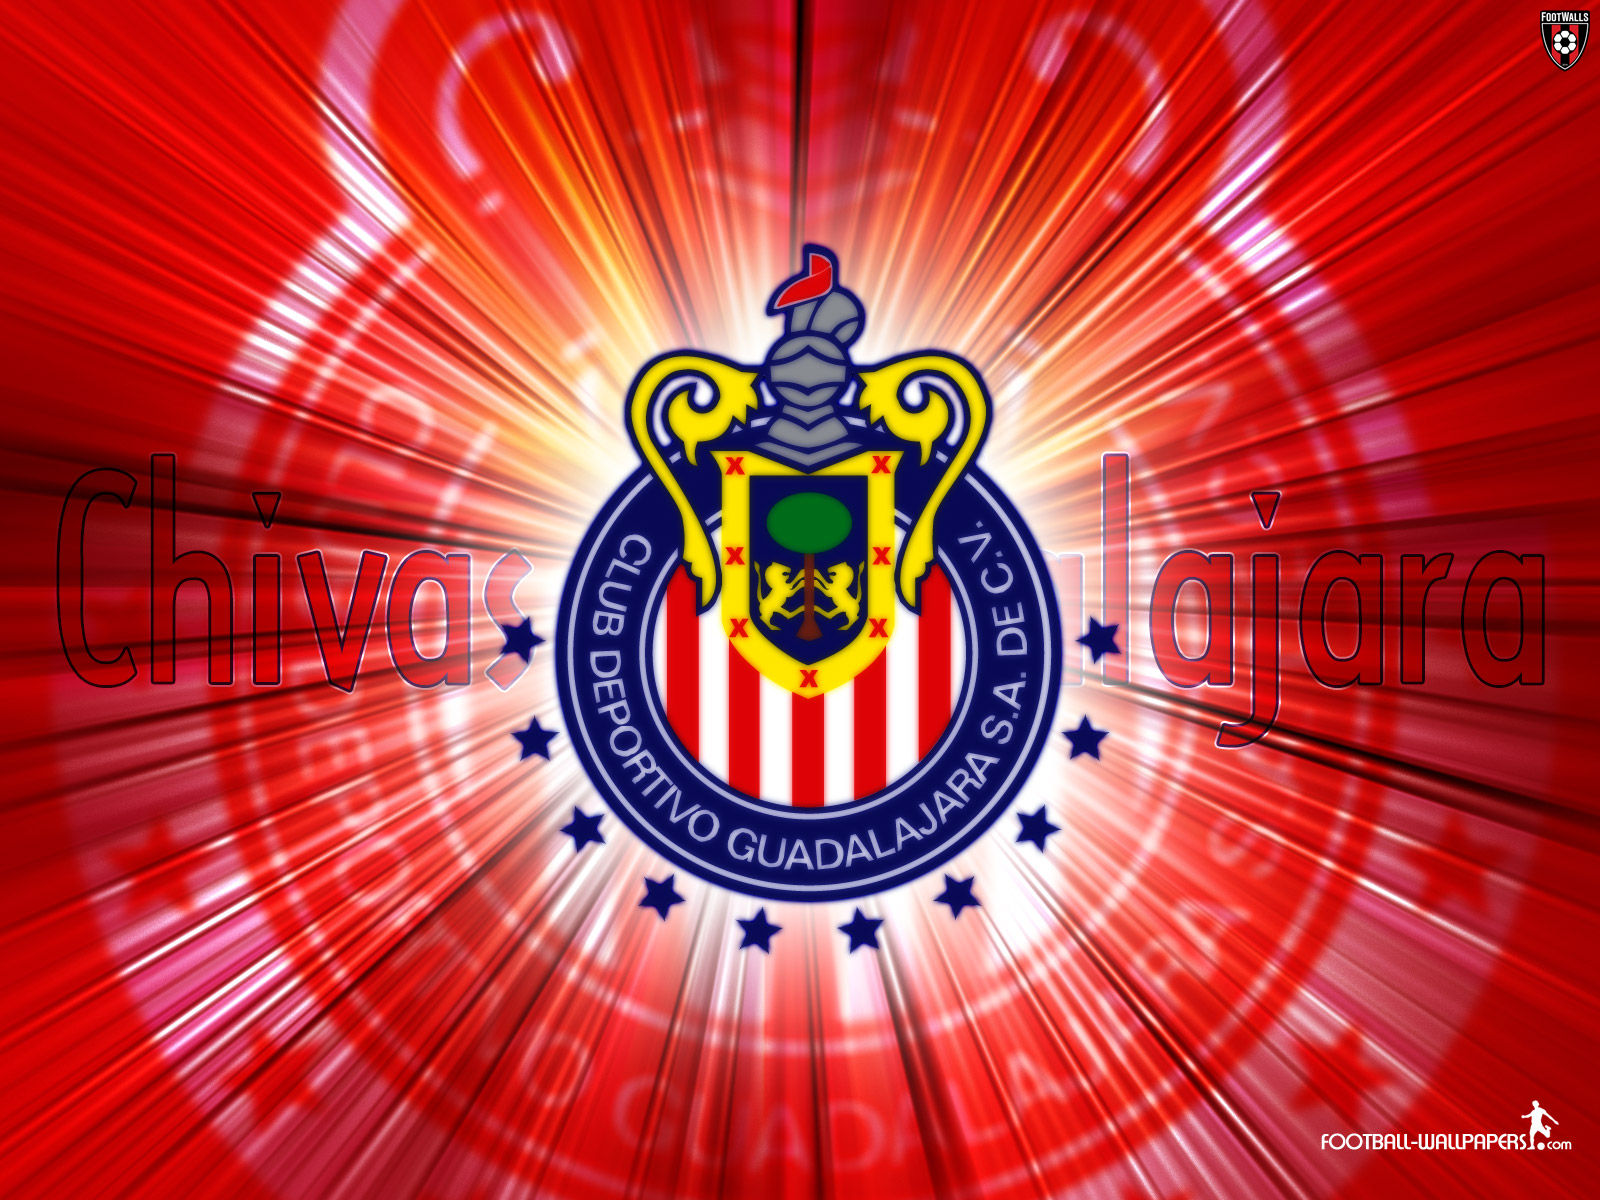 Chivas guadalajara wallpaper 5 football wallpapers chivas guadalajara wallpaper voltagebd